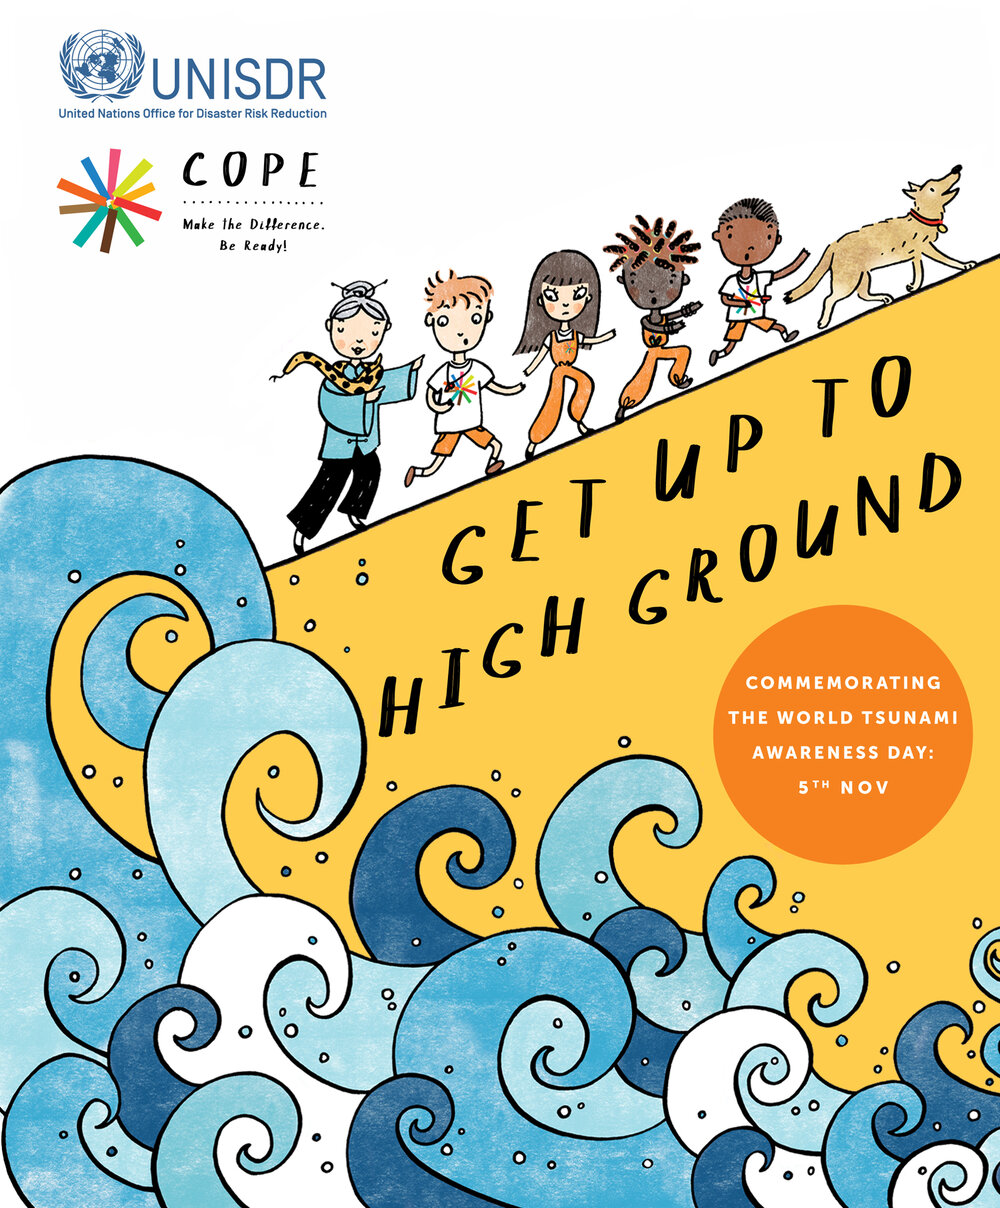 COPE tsunami book for the UNISDR